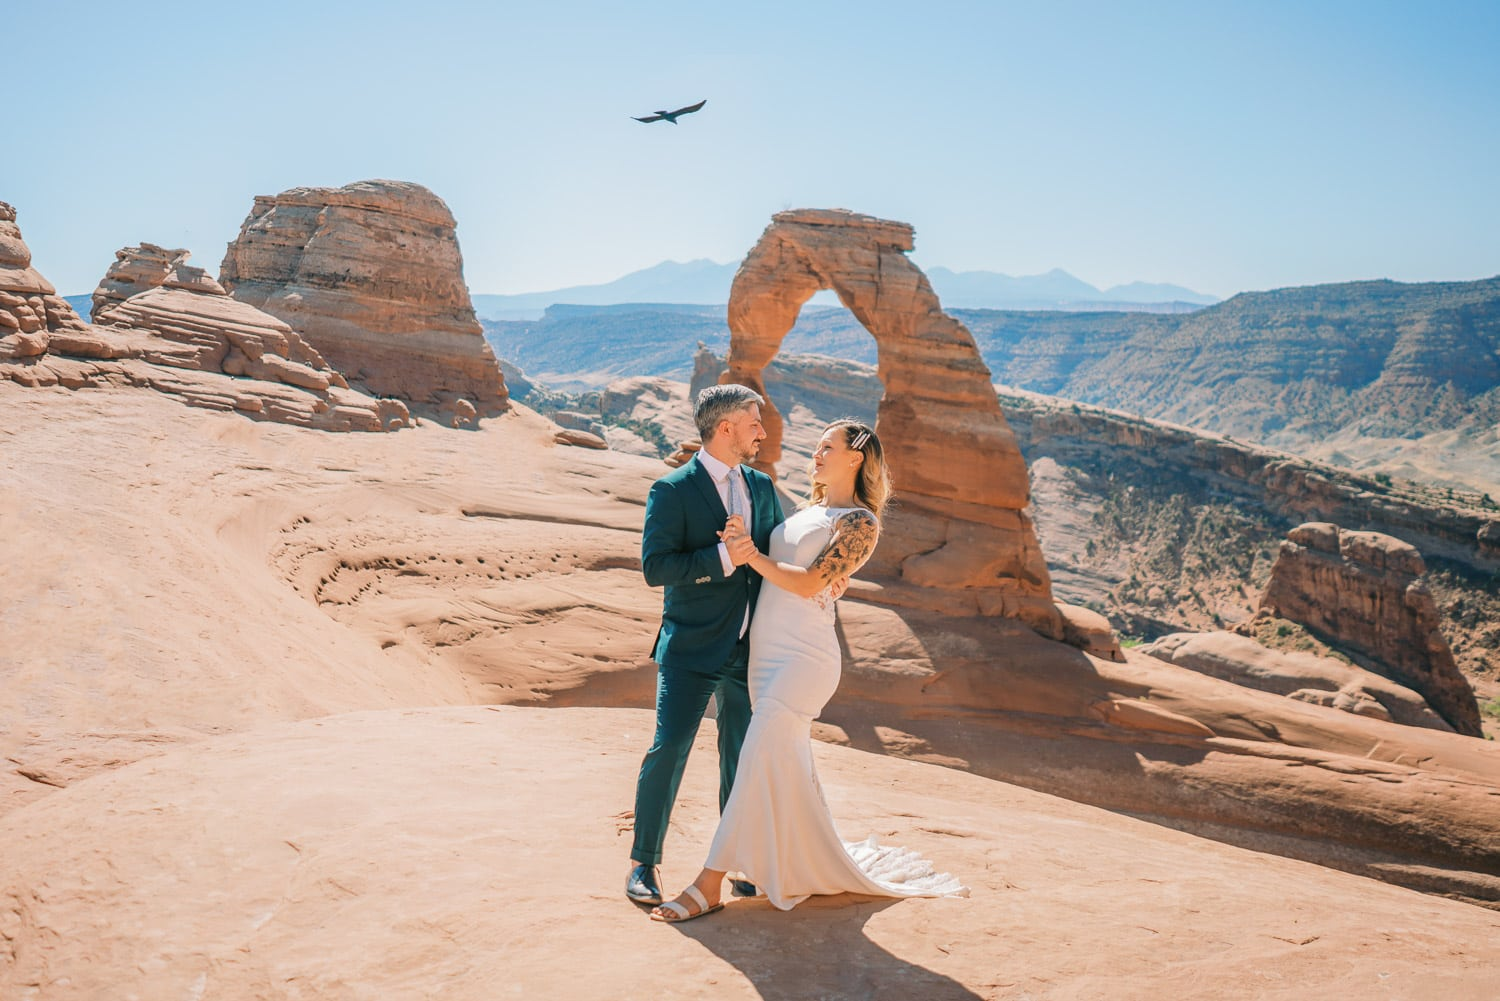 Moab elopement photographer with a bride and groom in Arches National Park near Delicate Arch in summer.